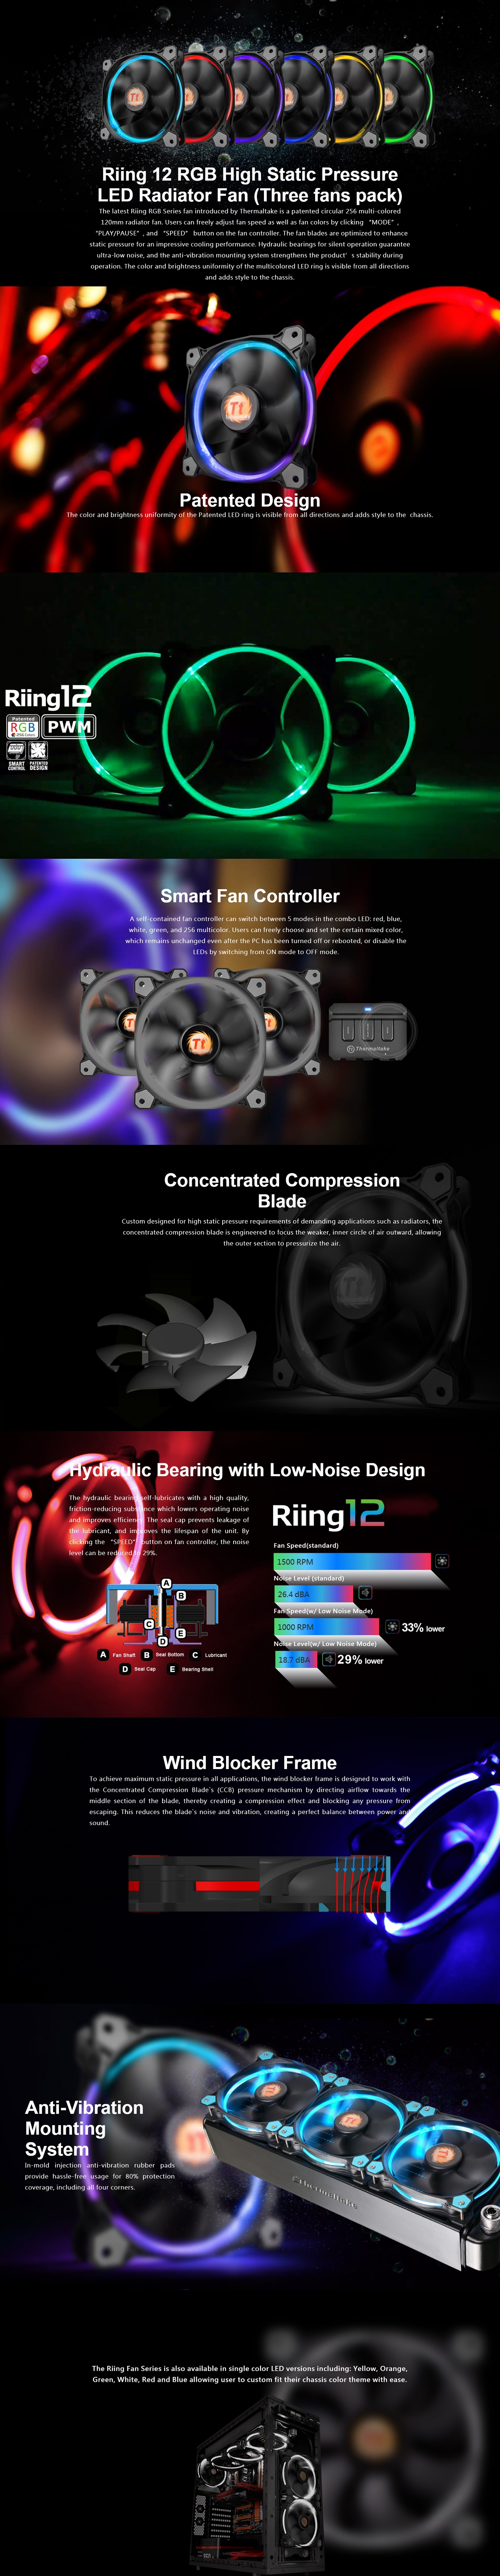 Thermaltake Riing 12 Rgb High Static Pressure Radi Cl F042 Pl12sw B Led 3 Fans Pack Features